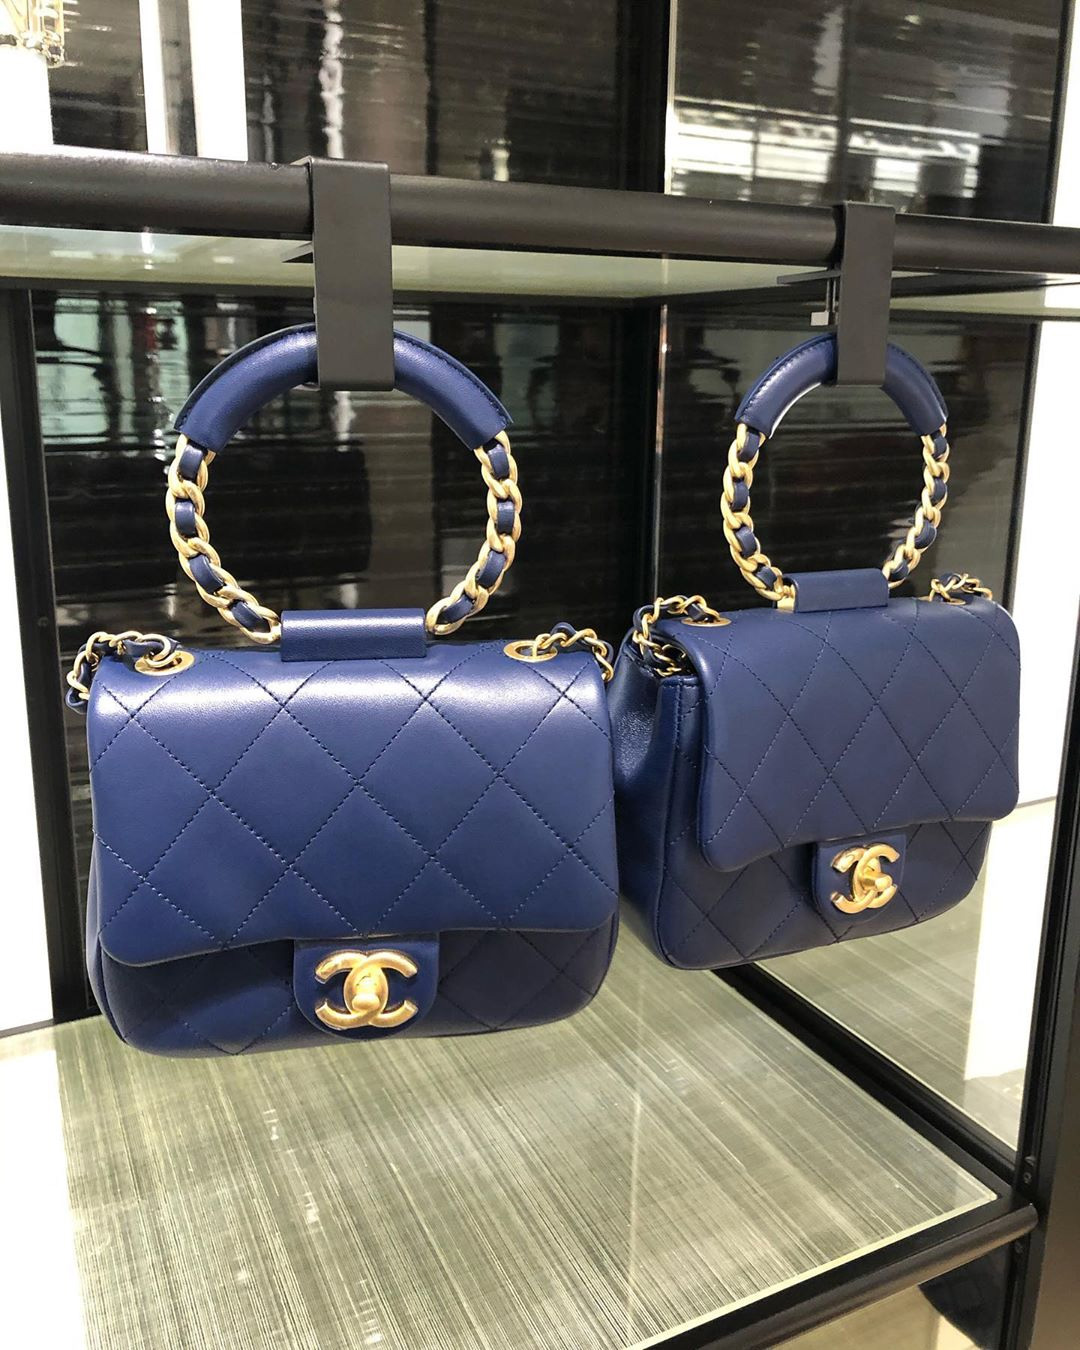 Chanel Circular Handle Bag